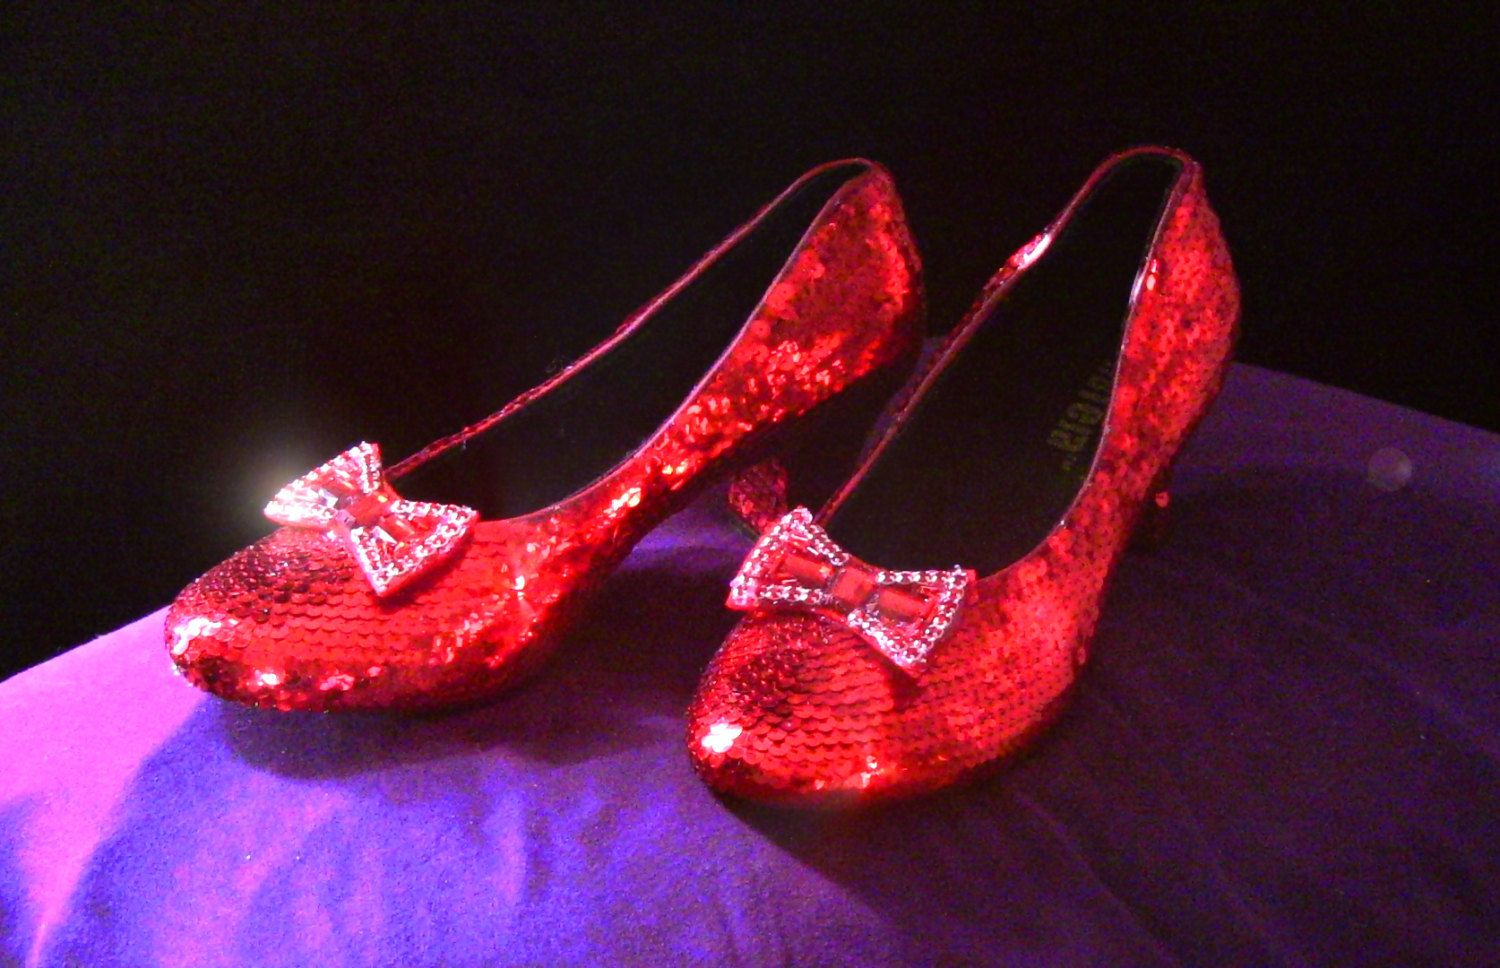 Custom Made Replica Ruby Slippers Made to by RandysRubySlippers $175.00 & Custom Made Replica Ruby Slippers Made to by RandysRubySlippers ...